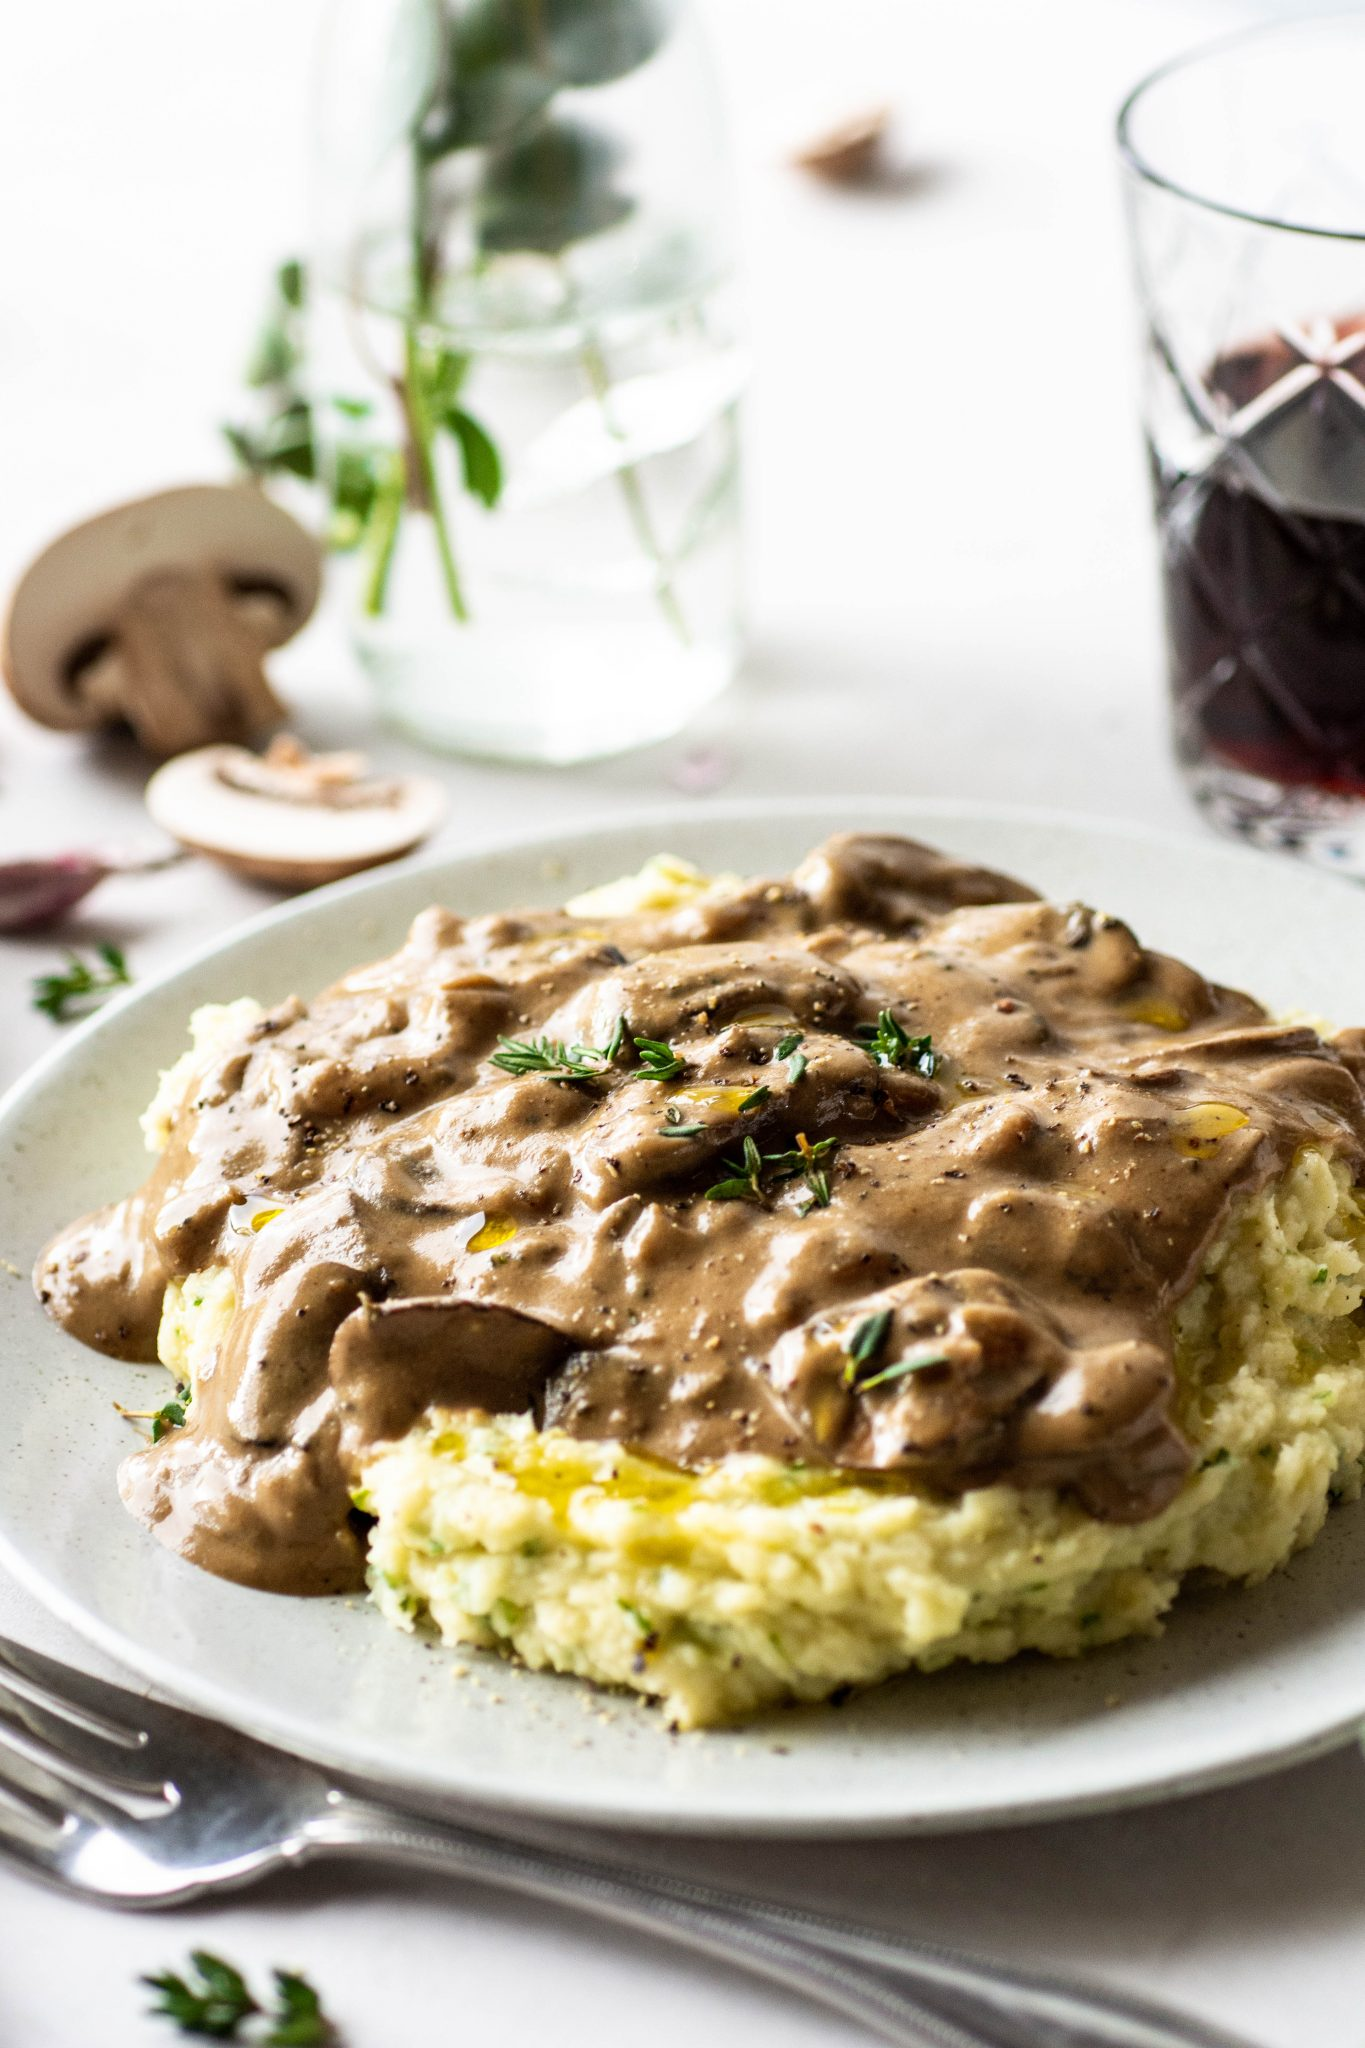 This gluten free and vegan mushroom gravy is the stuff that dreams are made of. Creamy, rich and flavorful, without any gluten or dairy. Make ahead friendly and an easy, healthy recipe that's perfect for the holidays! Gluten free, paleo, vegan and whole30 approved - a crazy delicious gravy for everyone at your table.